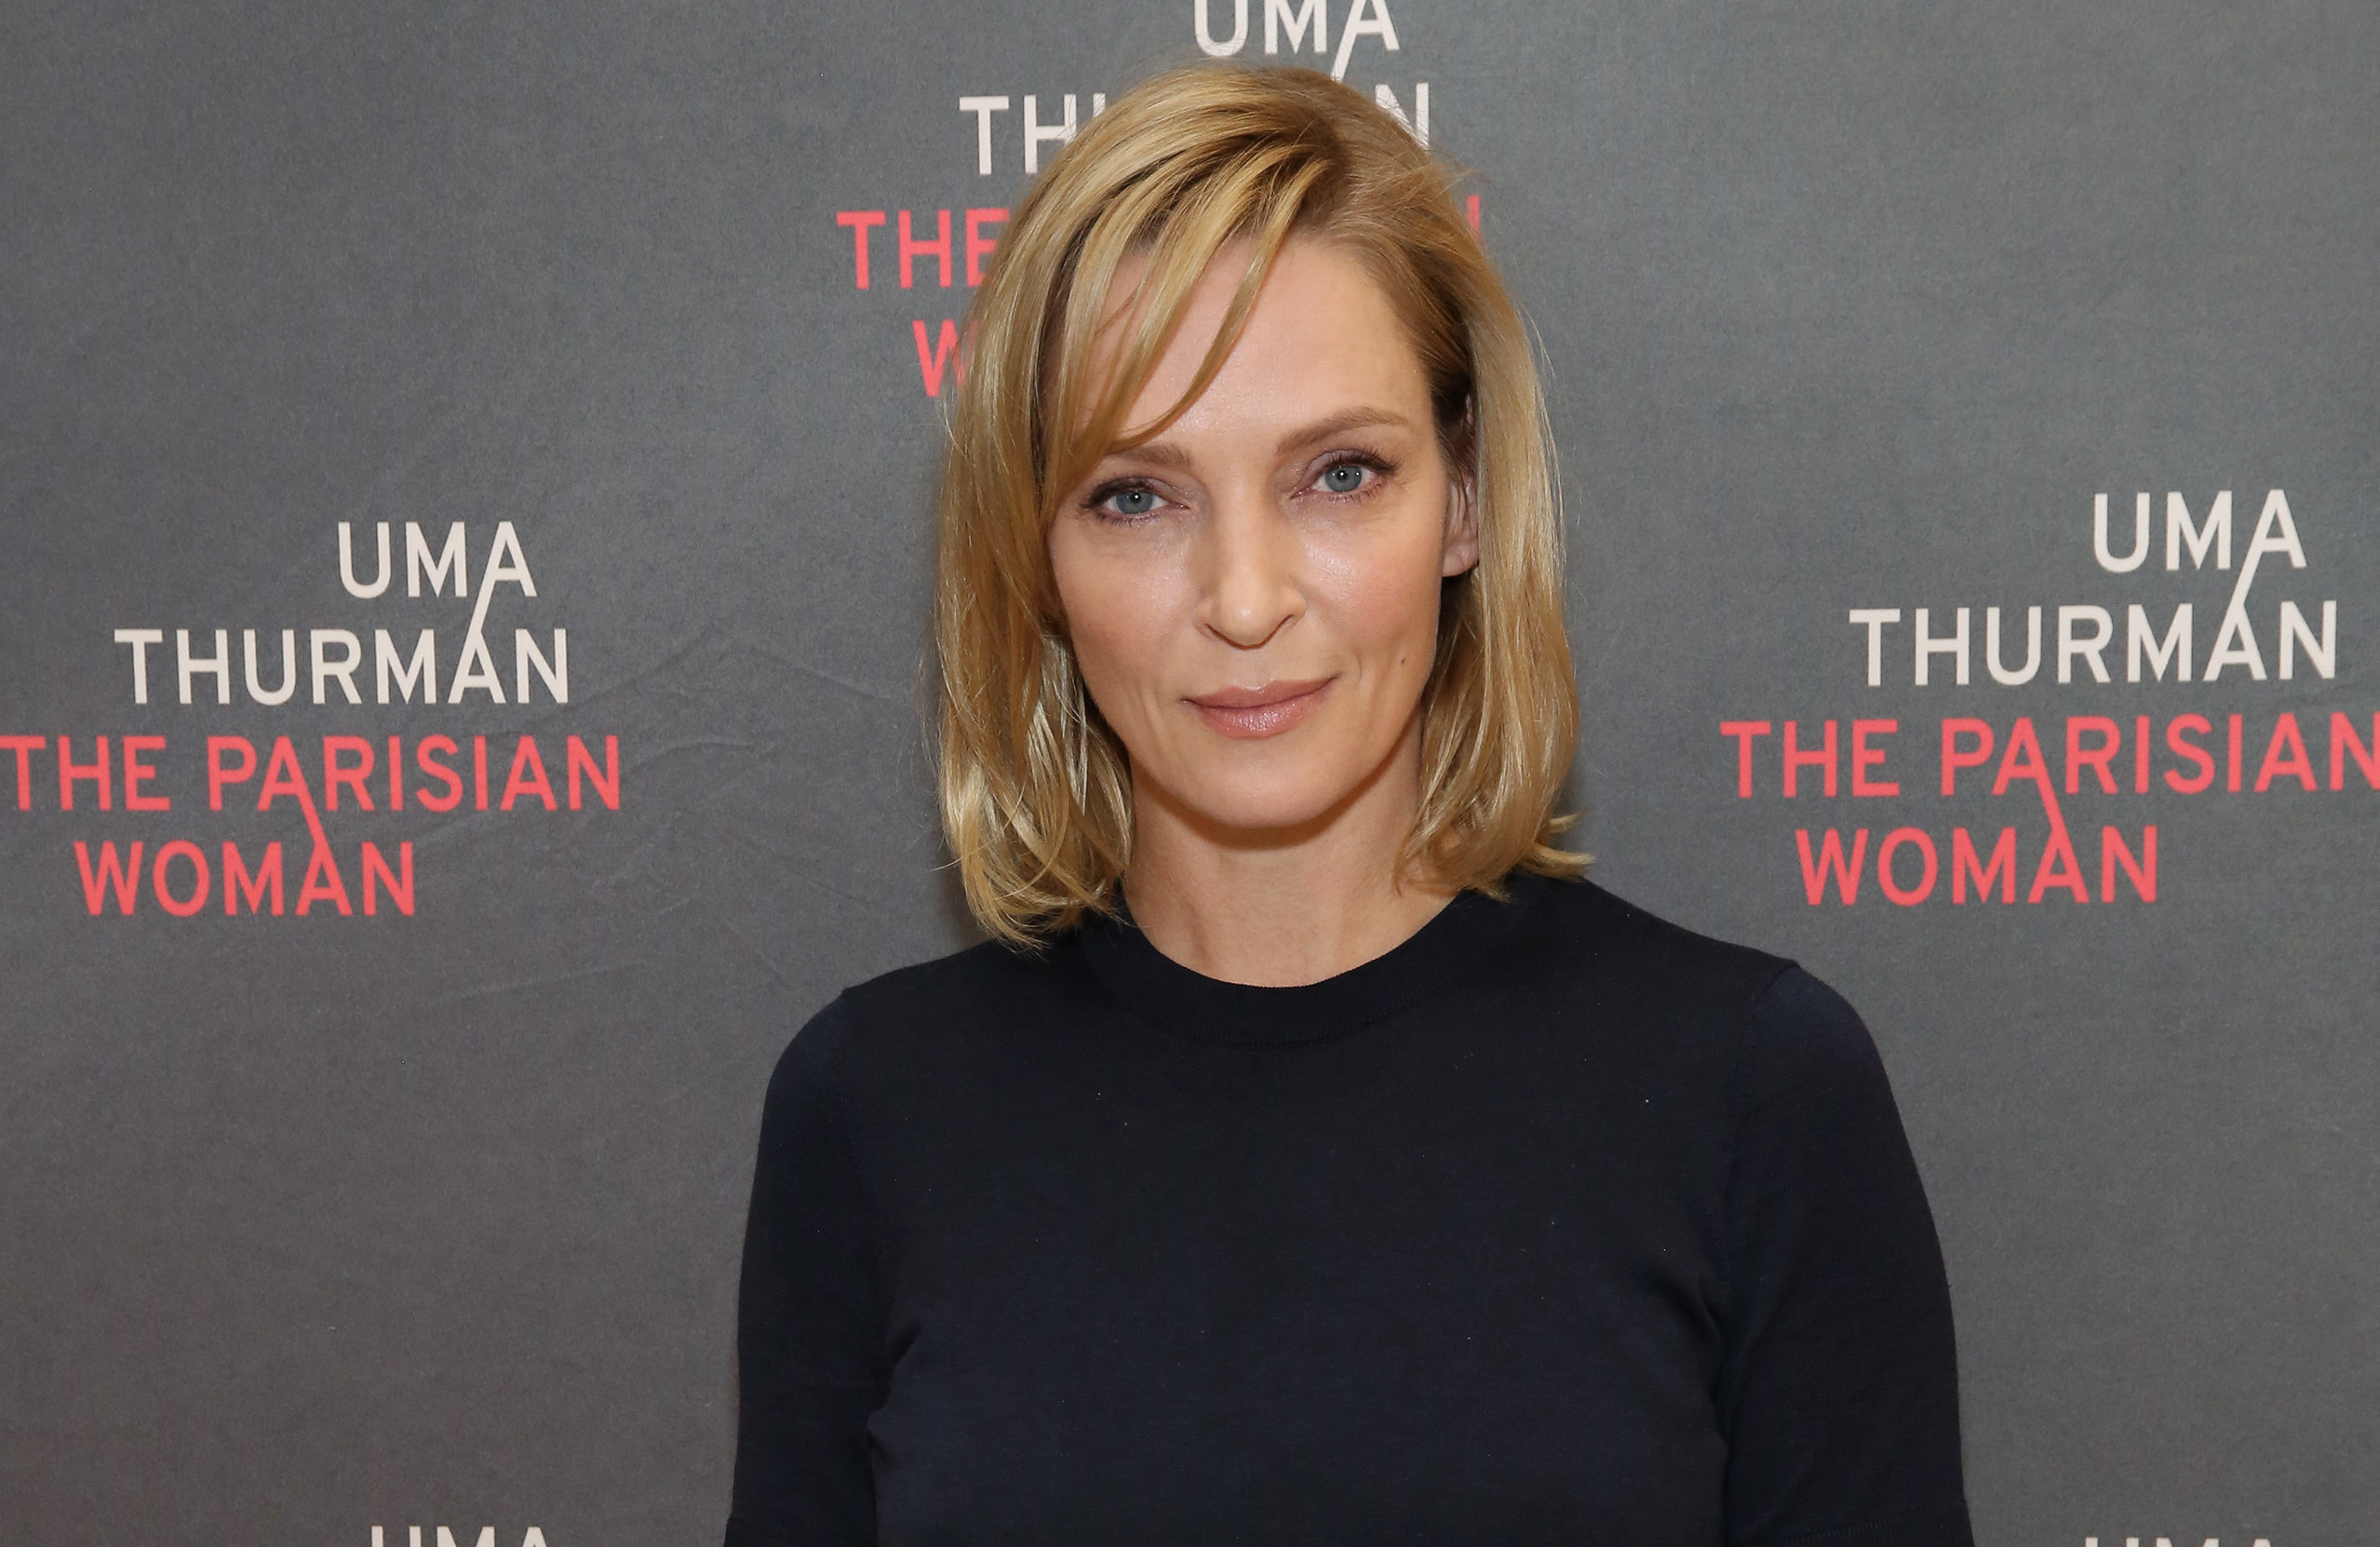 Uma Thurman addresses Harvey Weinstein allegations, writes #MeToo